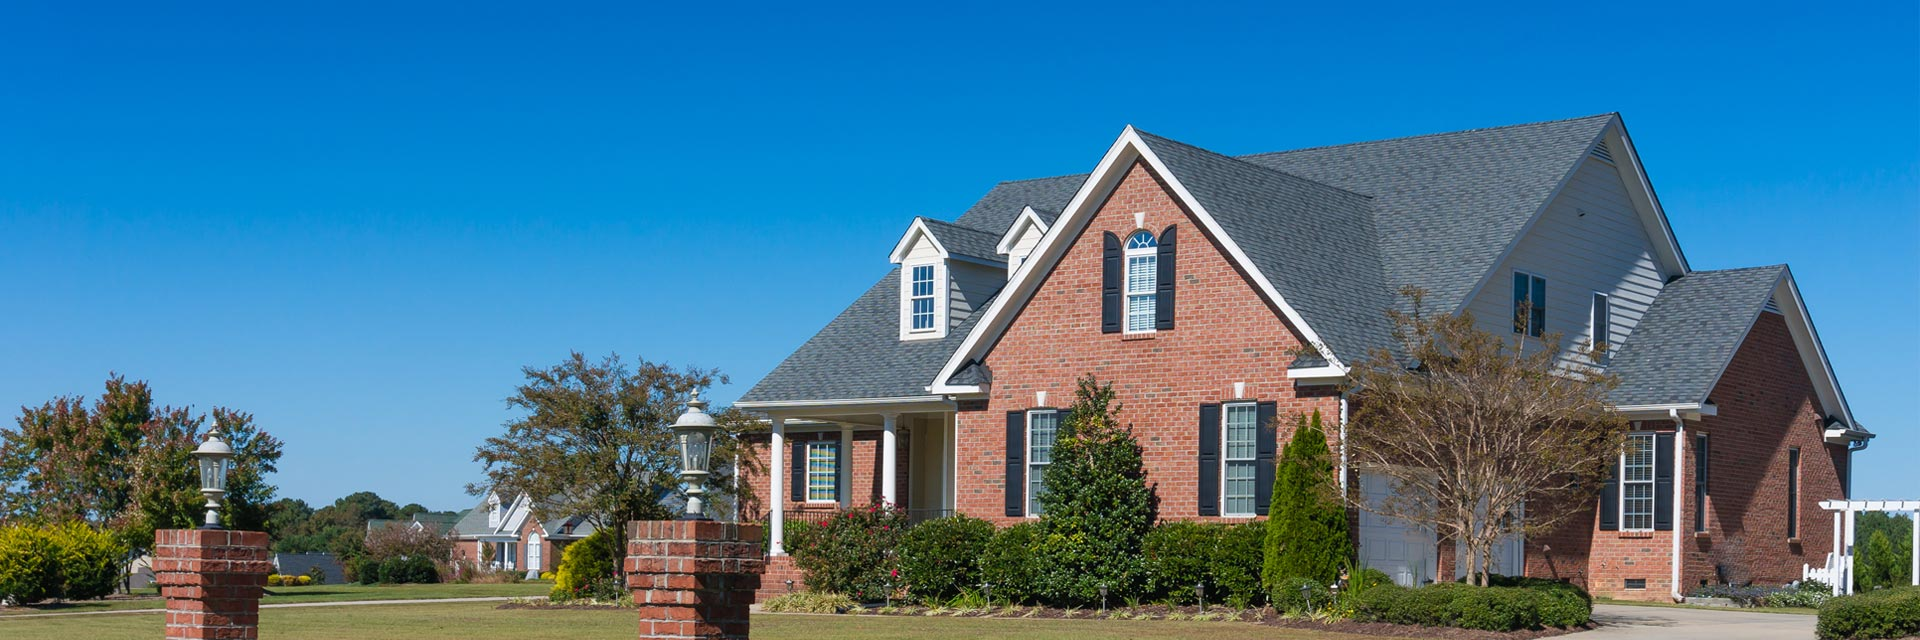 Exterior Painters Genuine Home Design